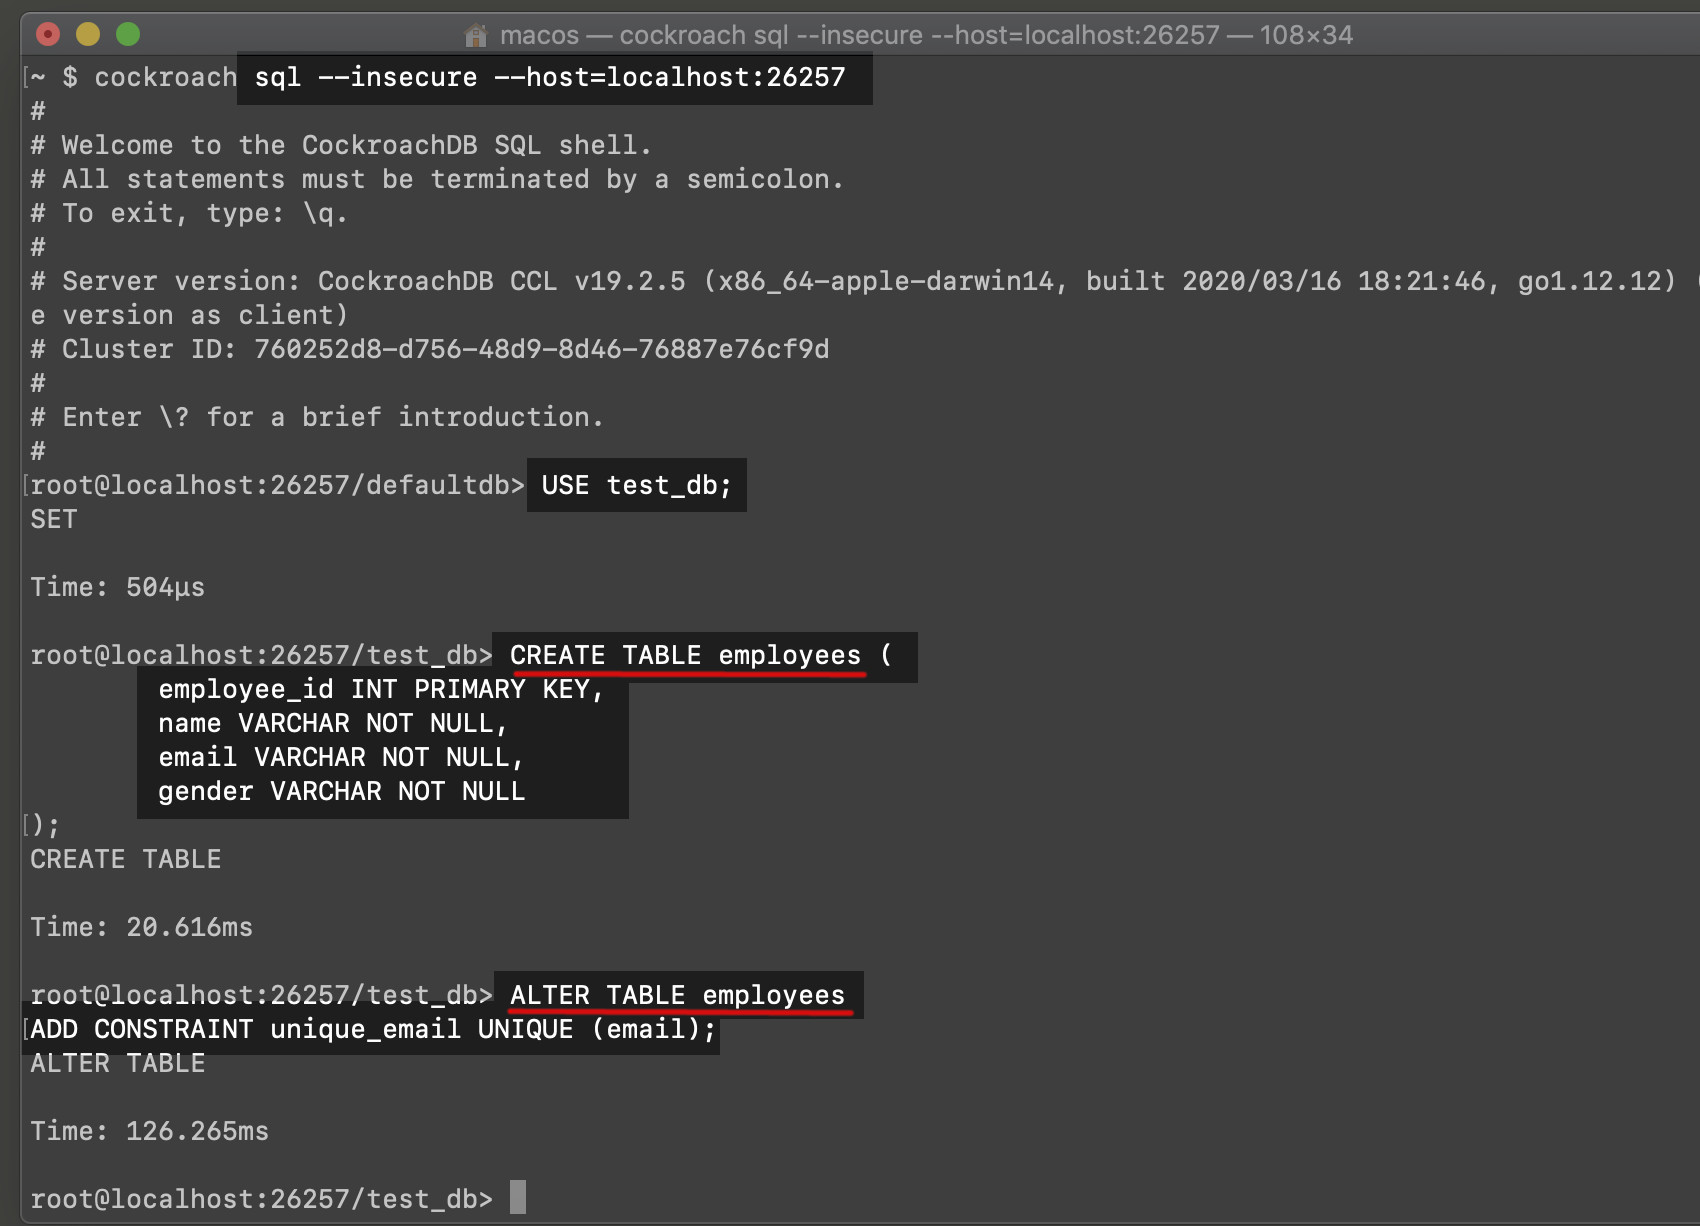 Screenshot of a Cockroachdb constraint create table and alter table SQL example